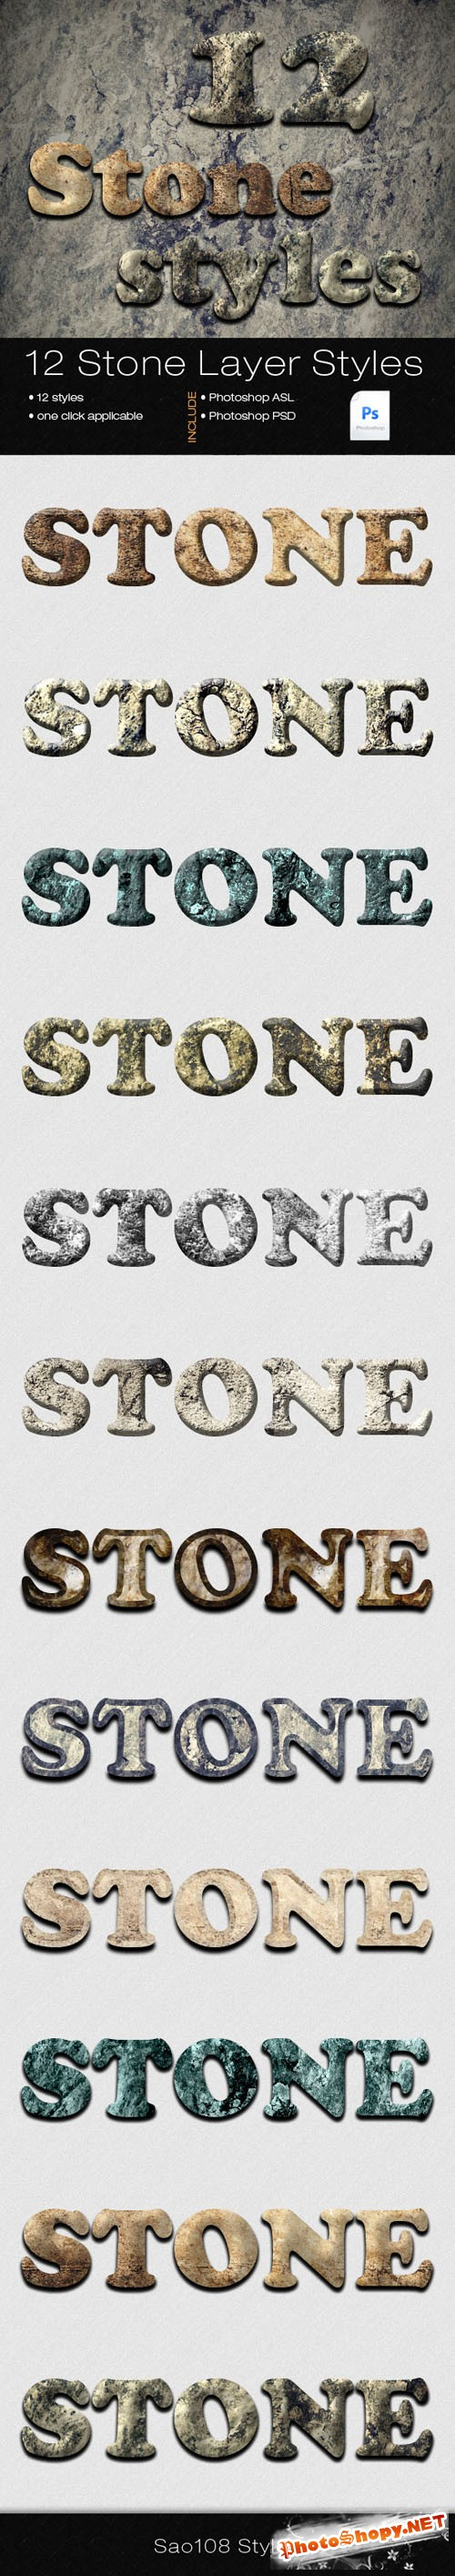 12 Stone Text Effect Photoshop Layer Styles